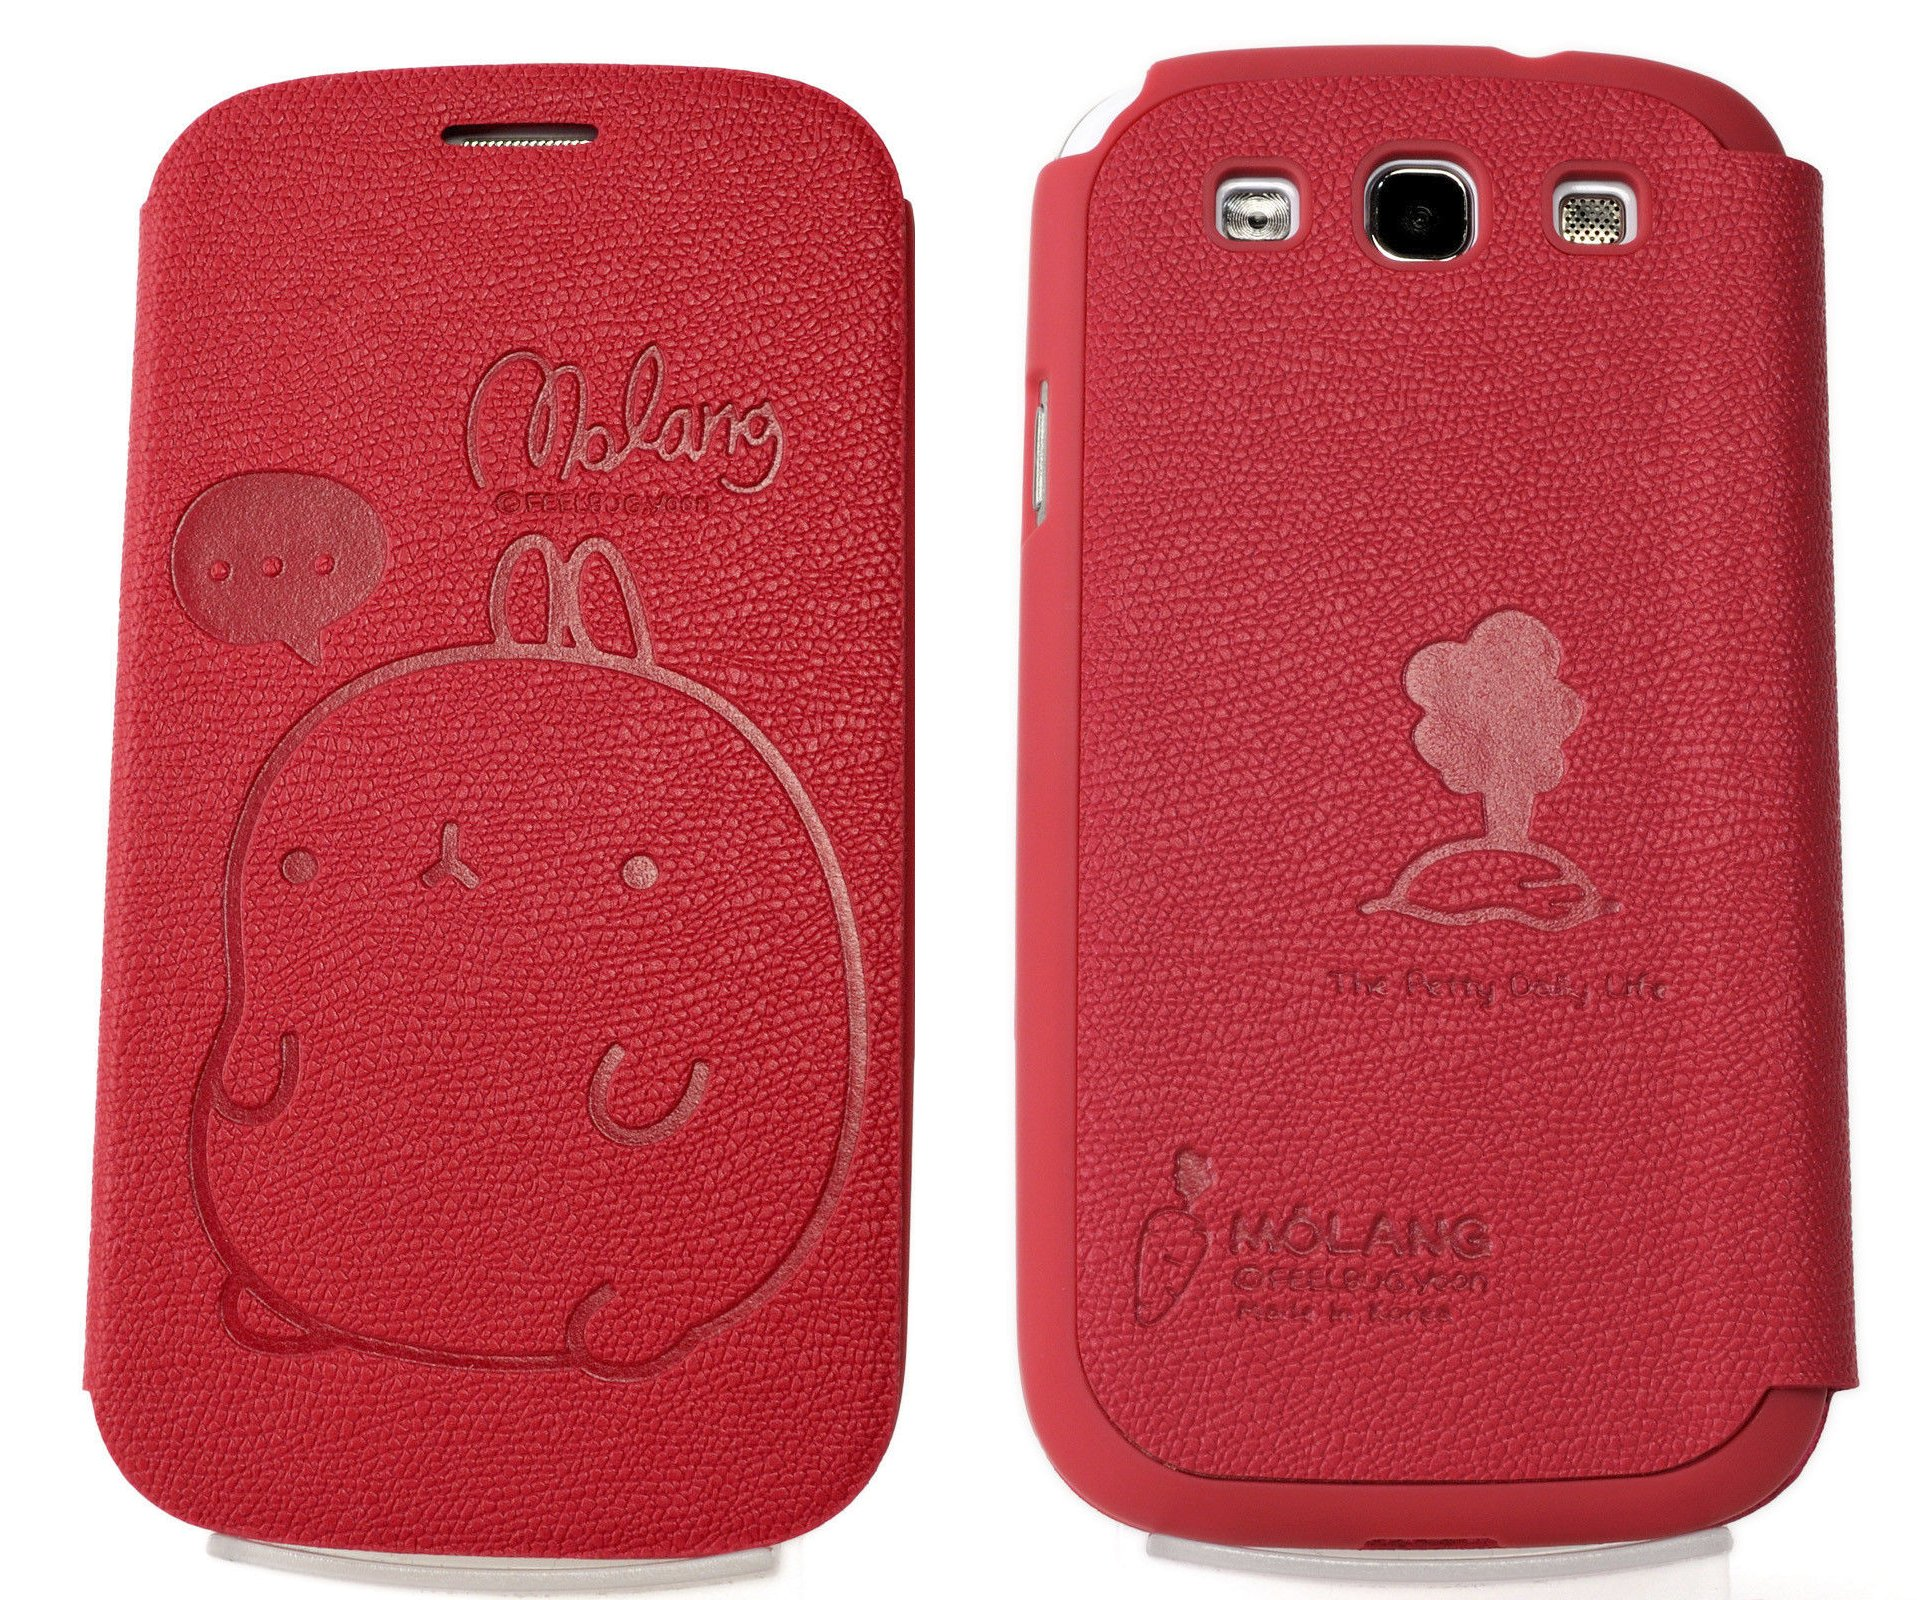 MOLANG Premium Leather Flip Case Cover For Samsung Galaxy S3 III i9300 i747 T999 L710 i535 R530 LTE 3G 4G (HotPink)